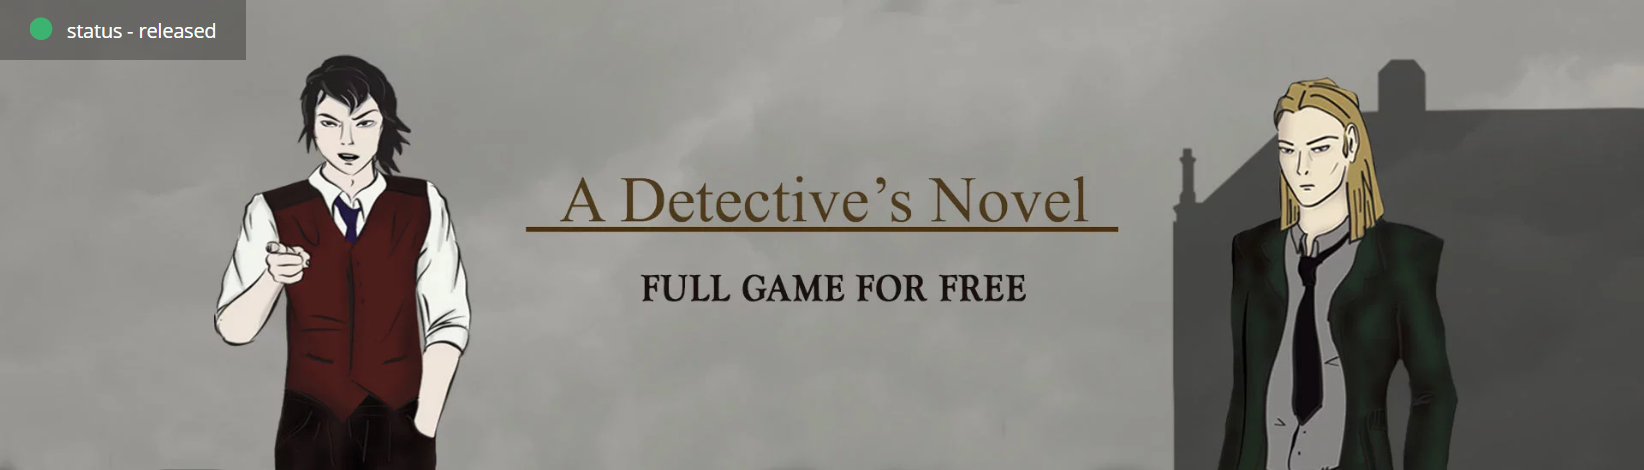 Screenshot_2019-10-18 A Detective's Novel Indiegala Developers.png